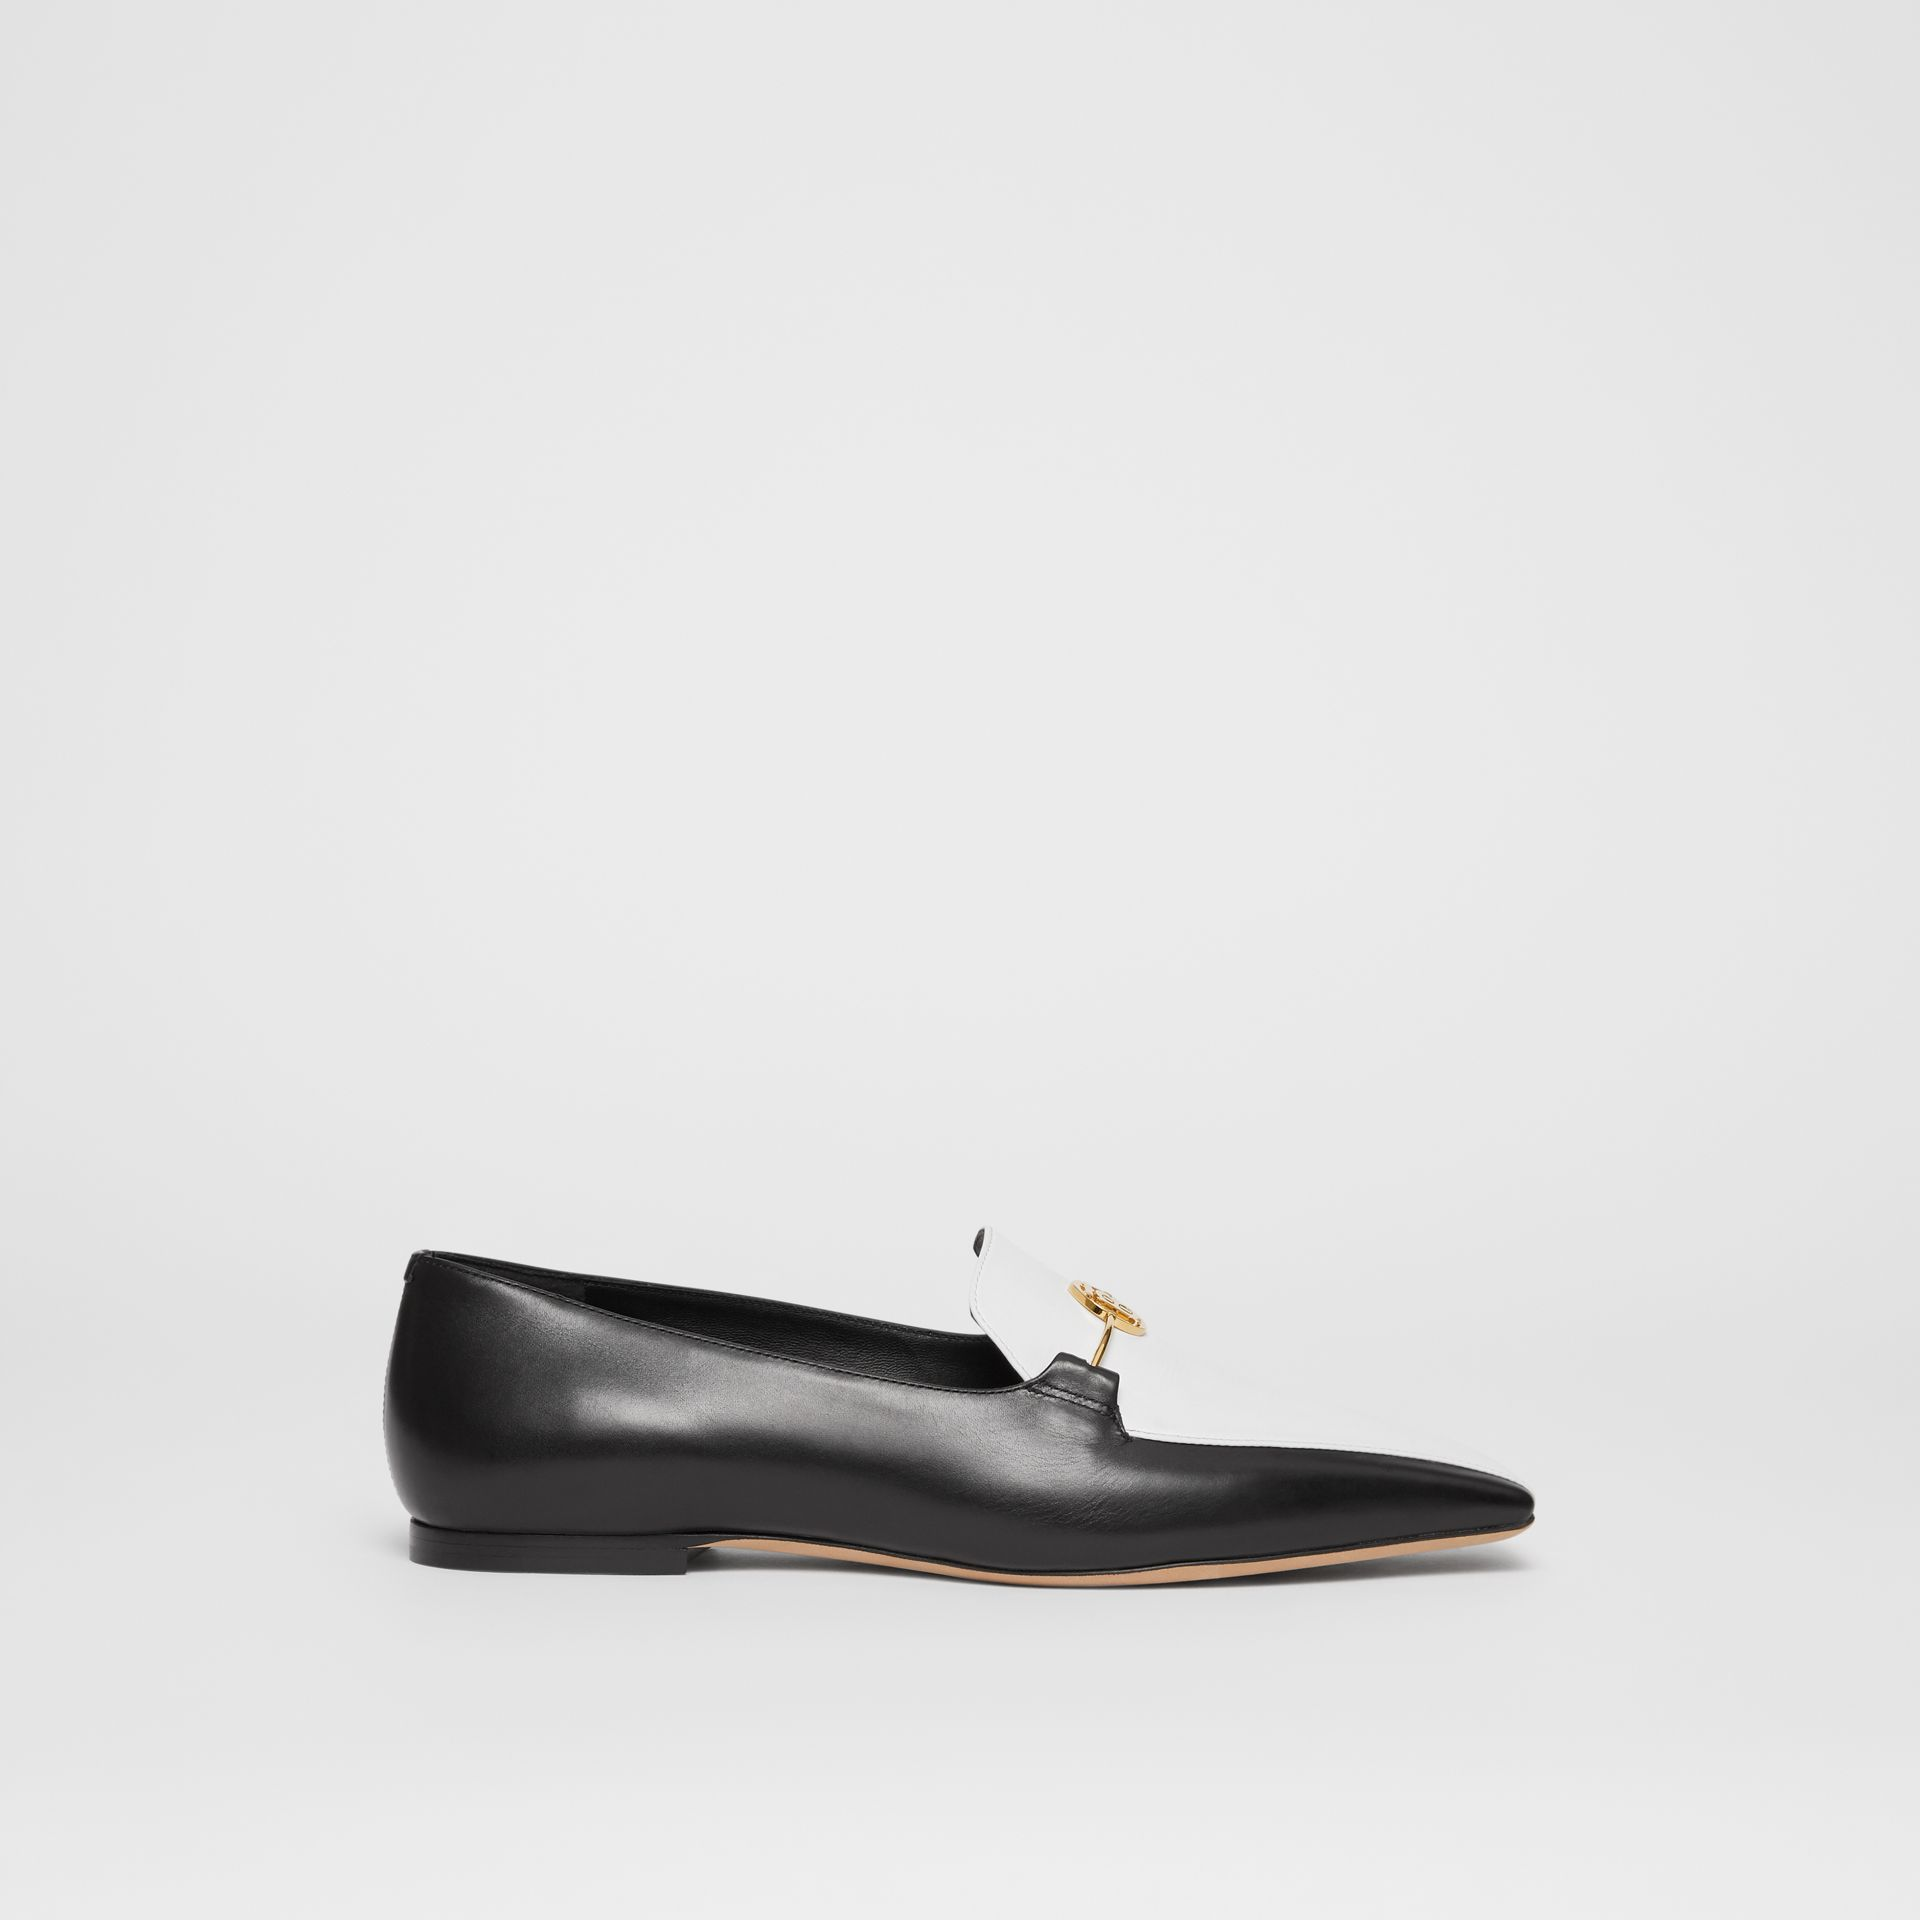 Monogram Motif Two-tone Leather Loafers in Black/white - Women | Burberry - gallery image 5